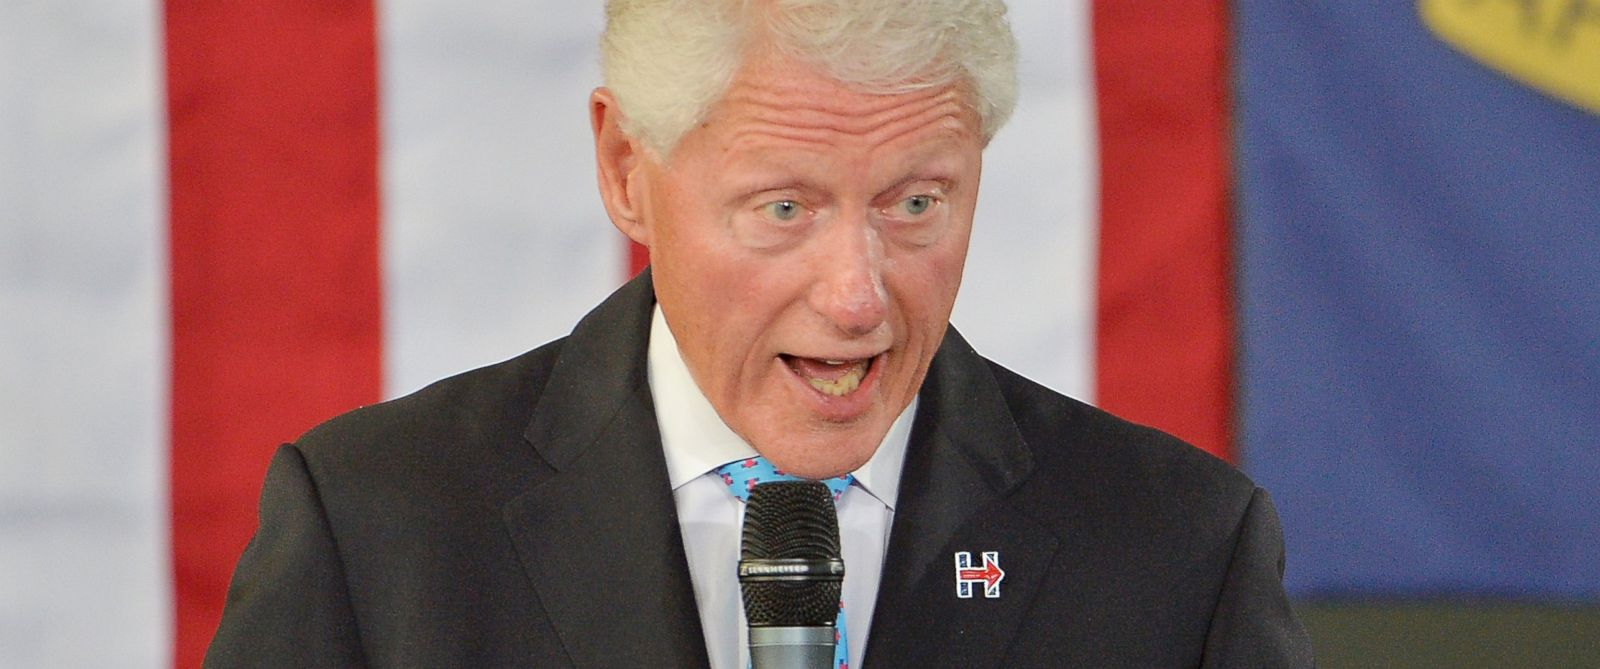 PHOTO: Former President Bill Clinton speaks at the Community Family Life & Recreation Center at Lyon Park, Sept. 6, 2016 in Durham, North Carolina.